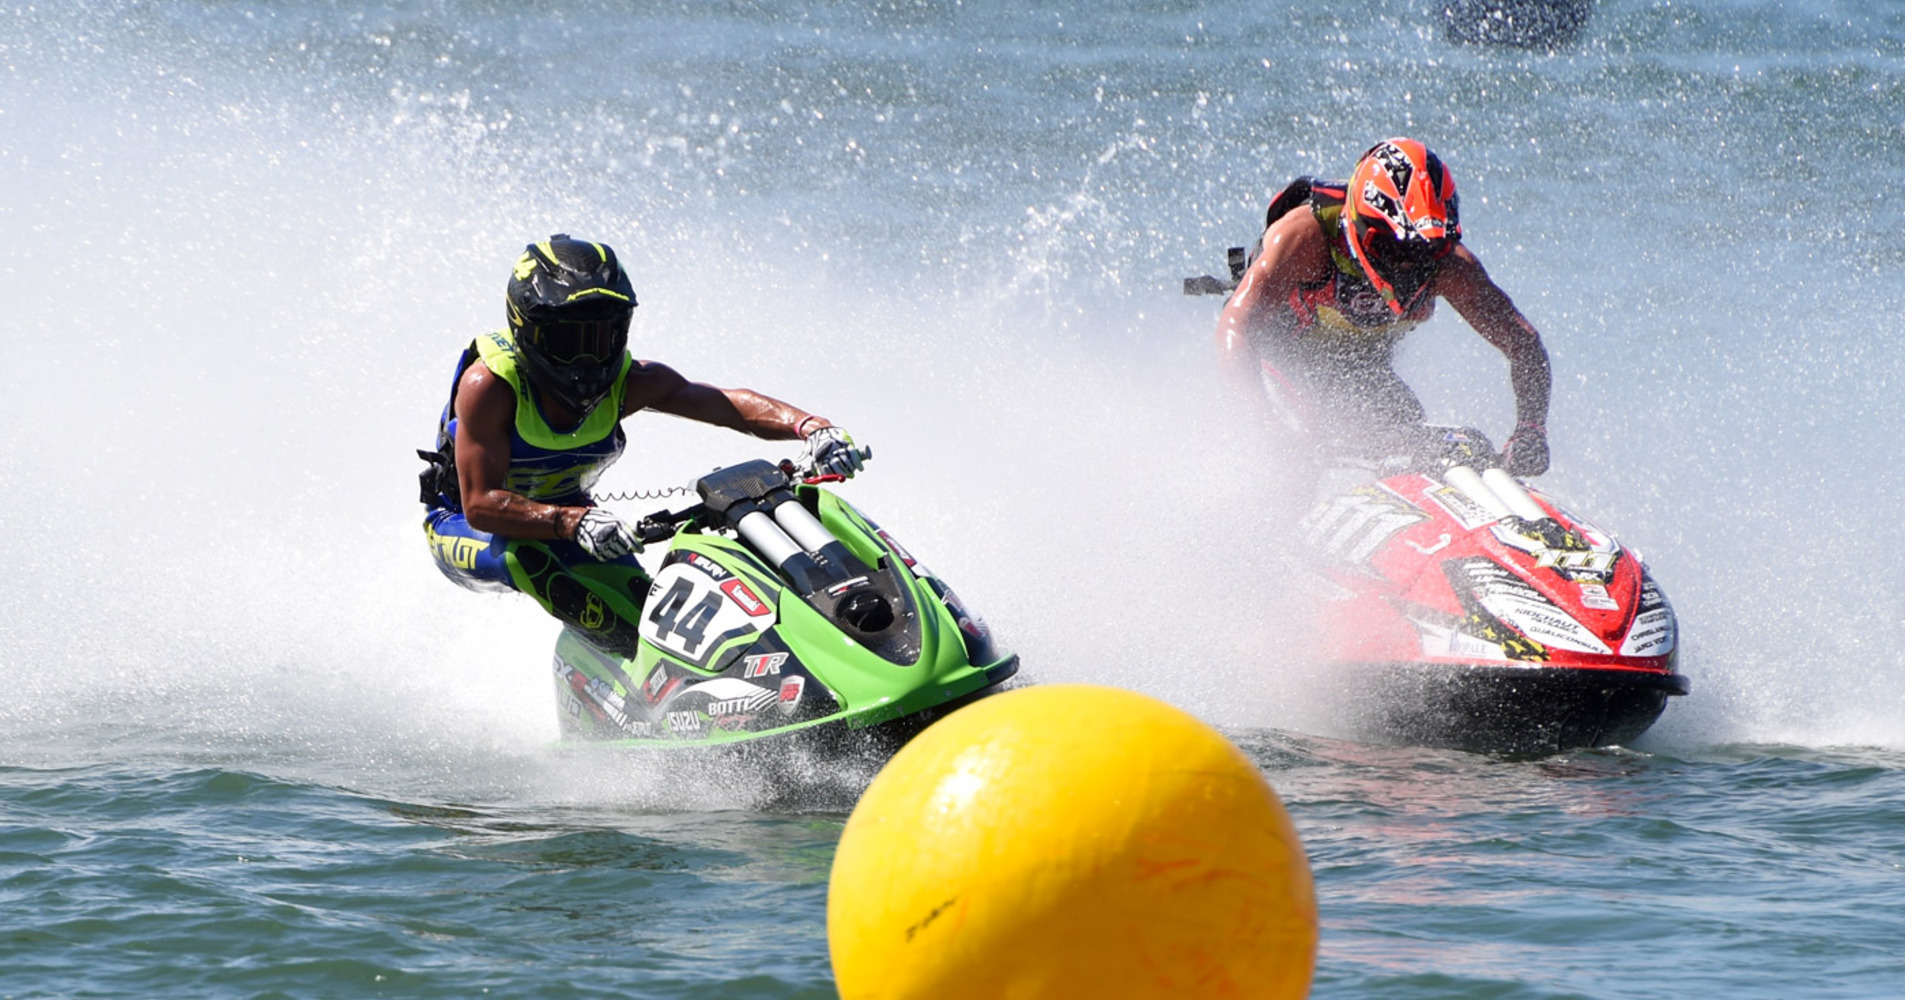 Expect some fast and furious action on Lake Neuchatel